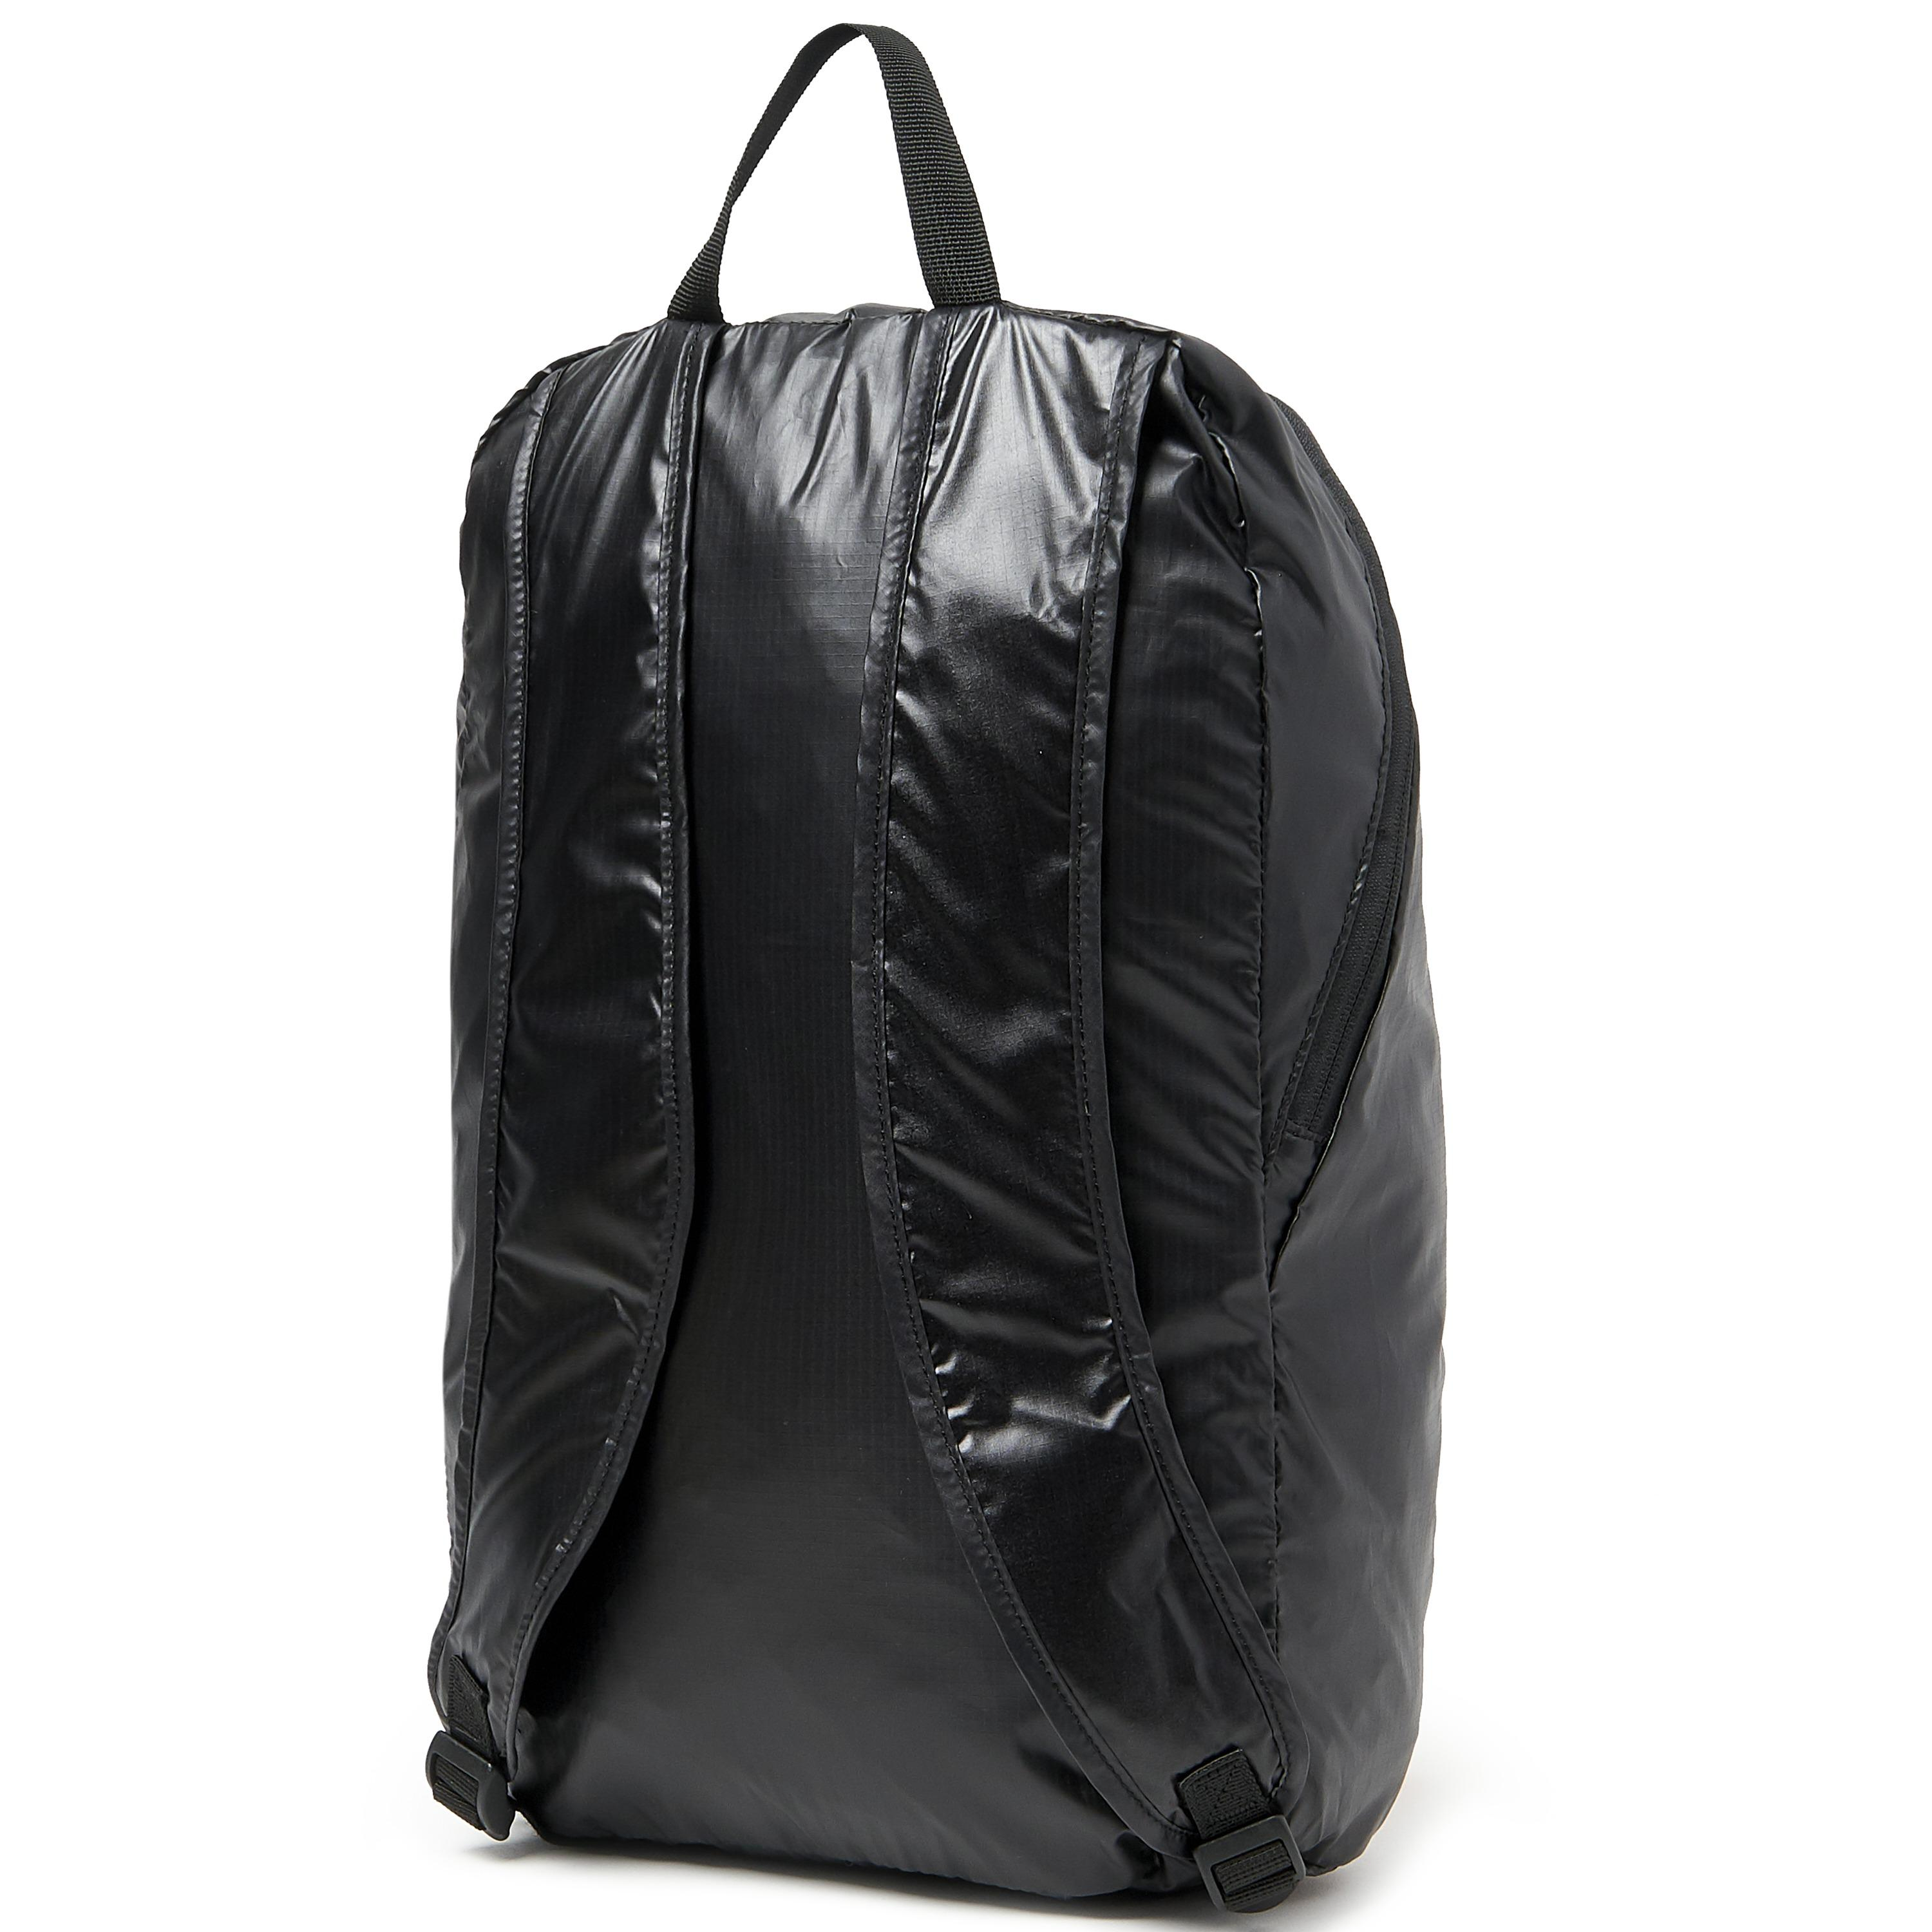 85cac0714d76 ... Packable Backpack for Men - Lyst. View fullscreen